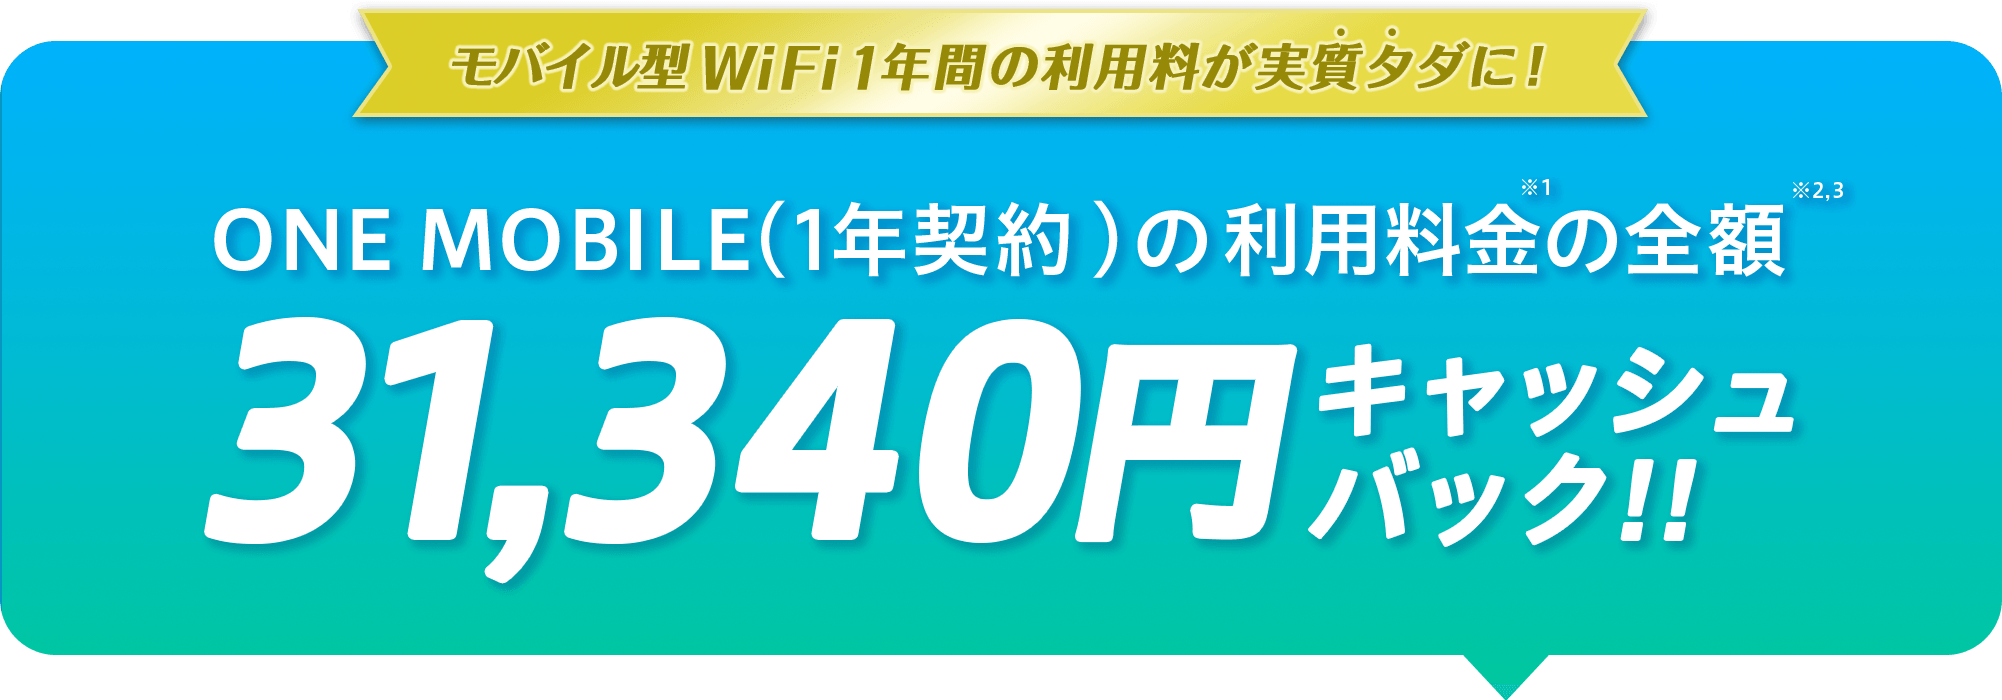 ONE MOBILE(1年契約)の利用料金の全額 31,340円 キャッシュバック